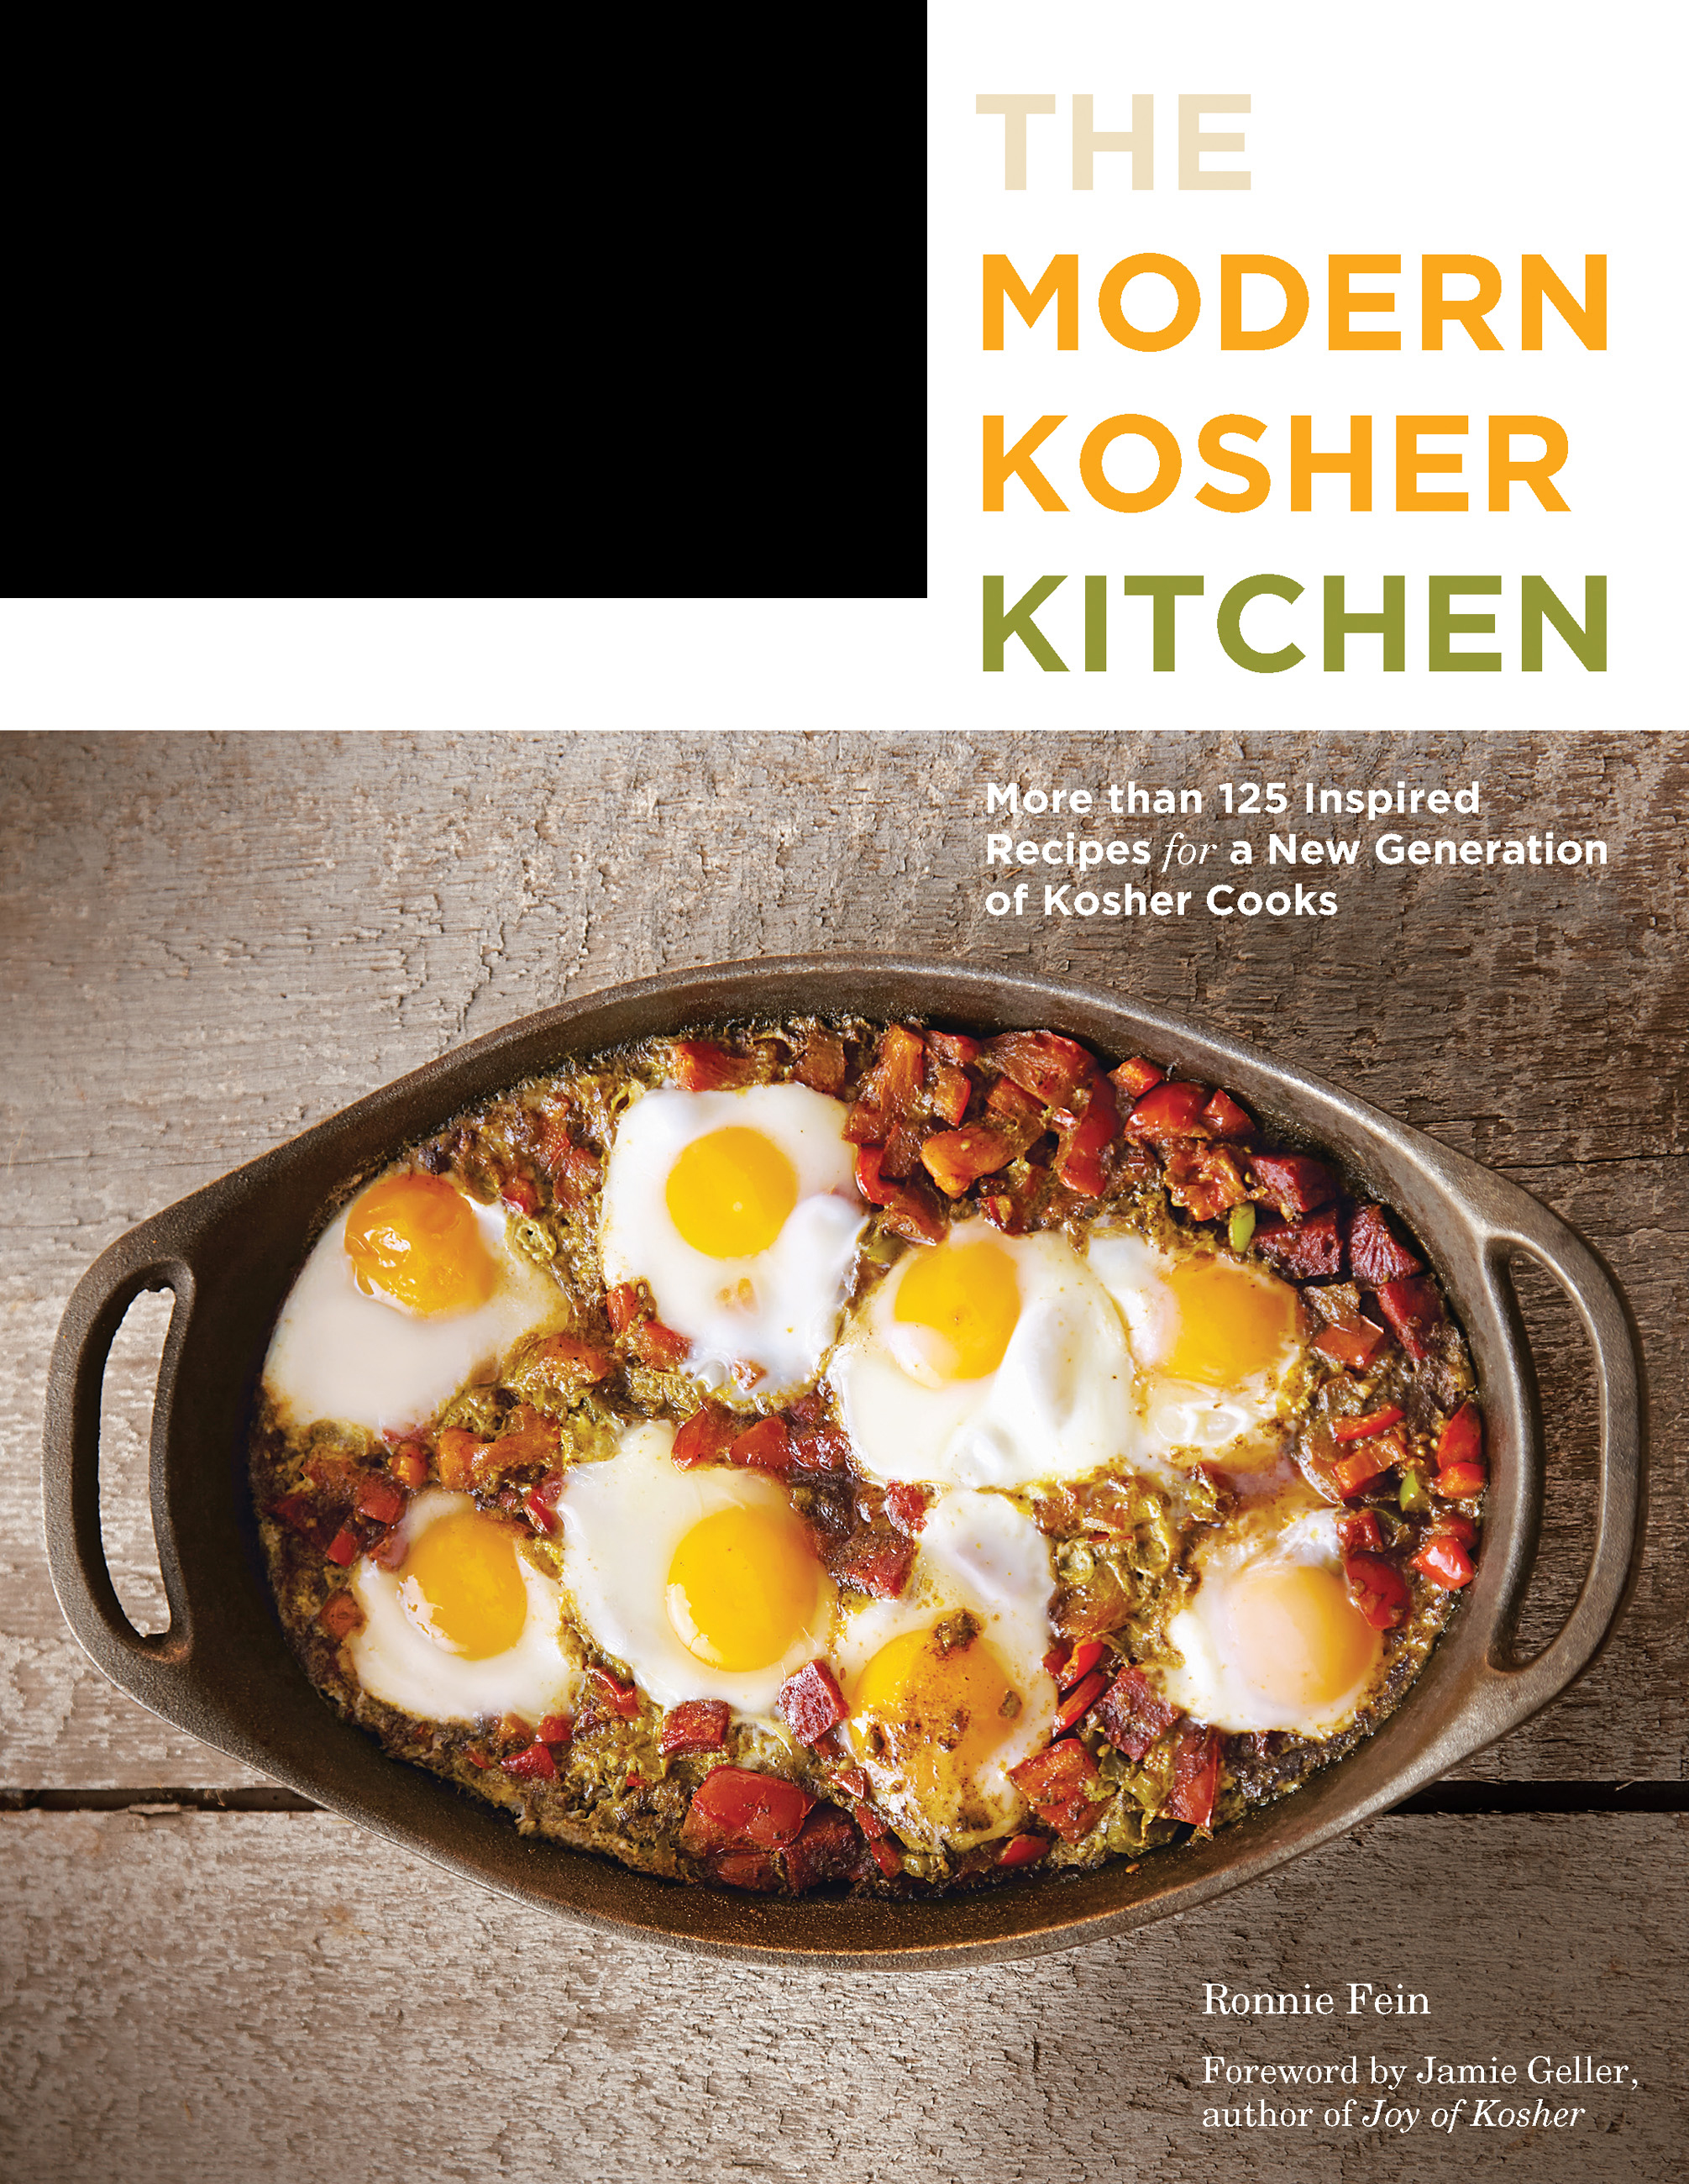 The Modern Kosher Kitchen 'More than 125 Inspired Recipes for a New Generation o